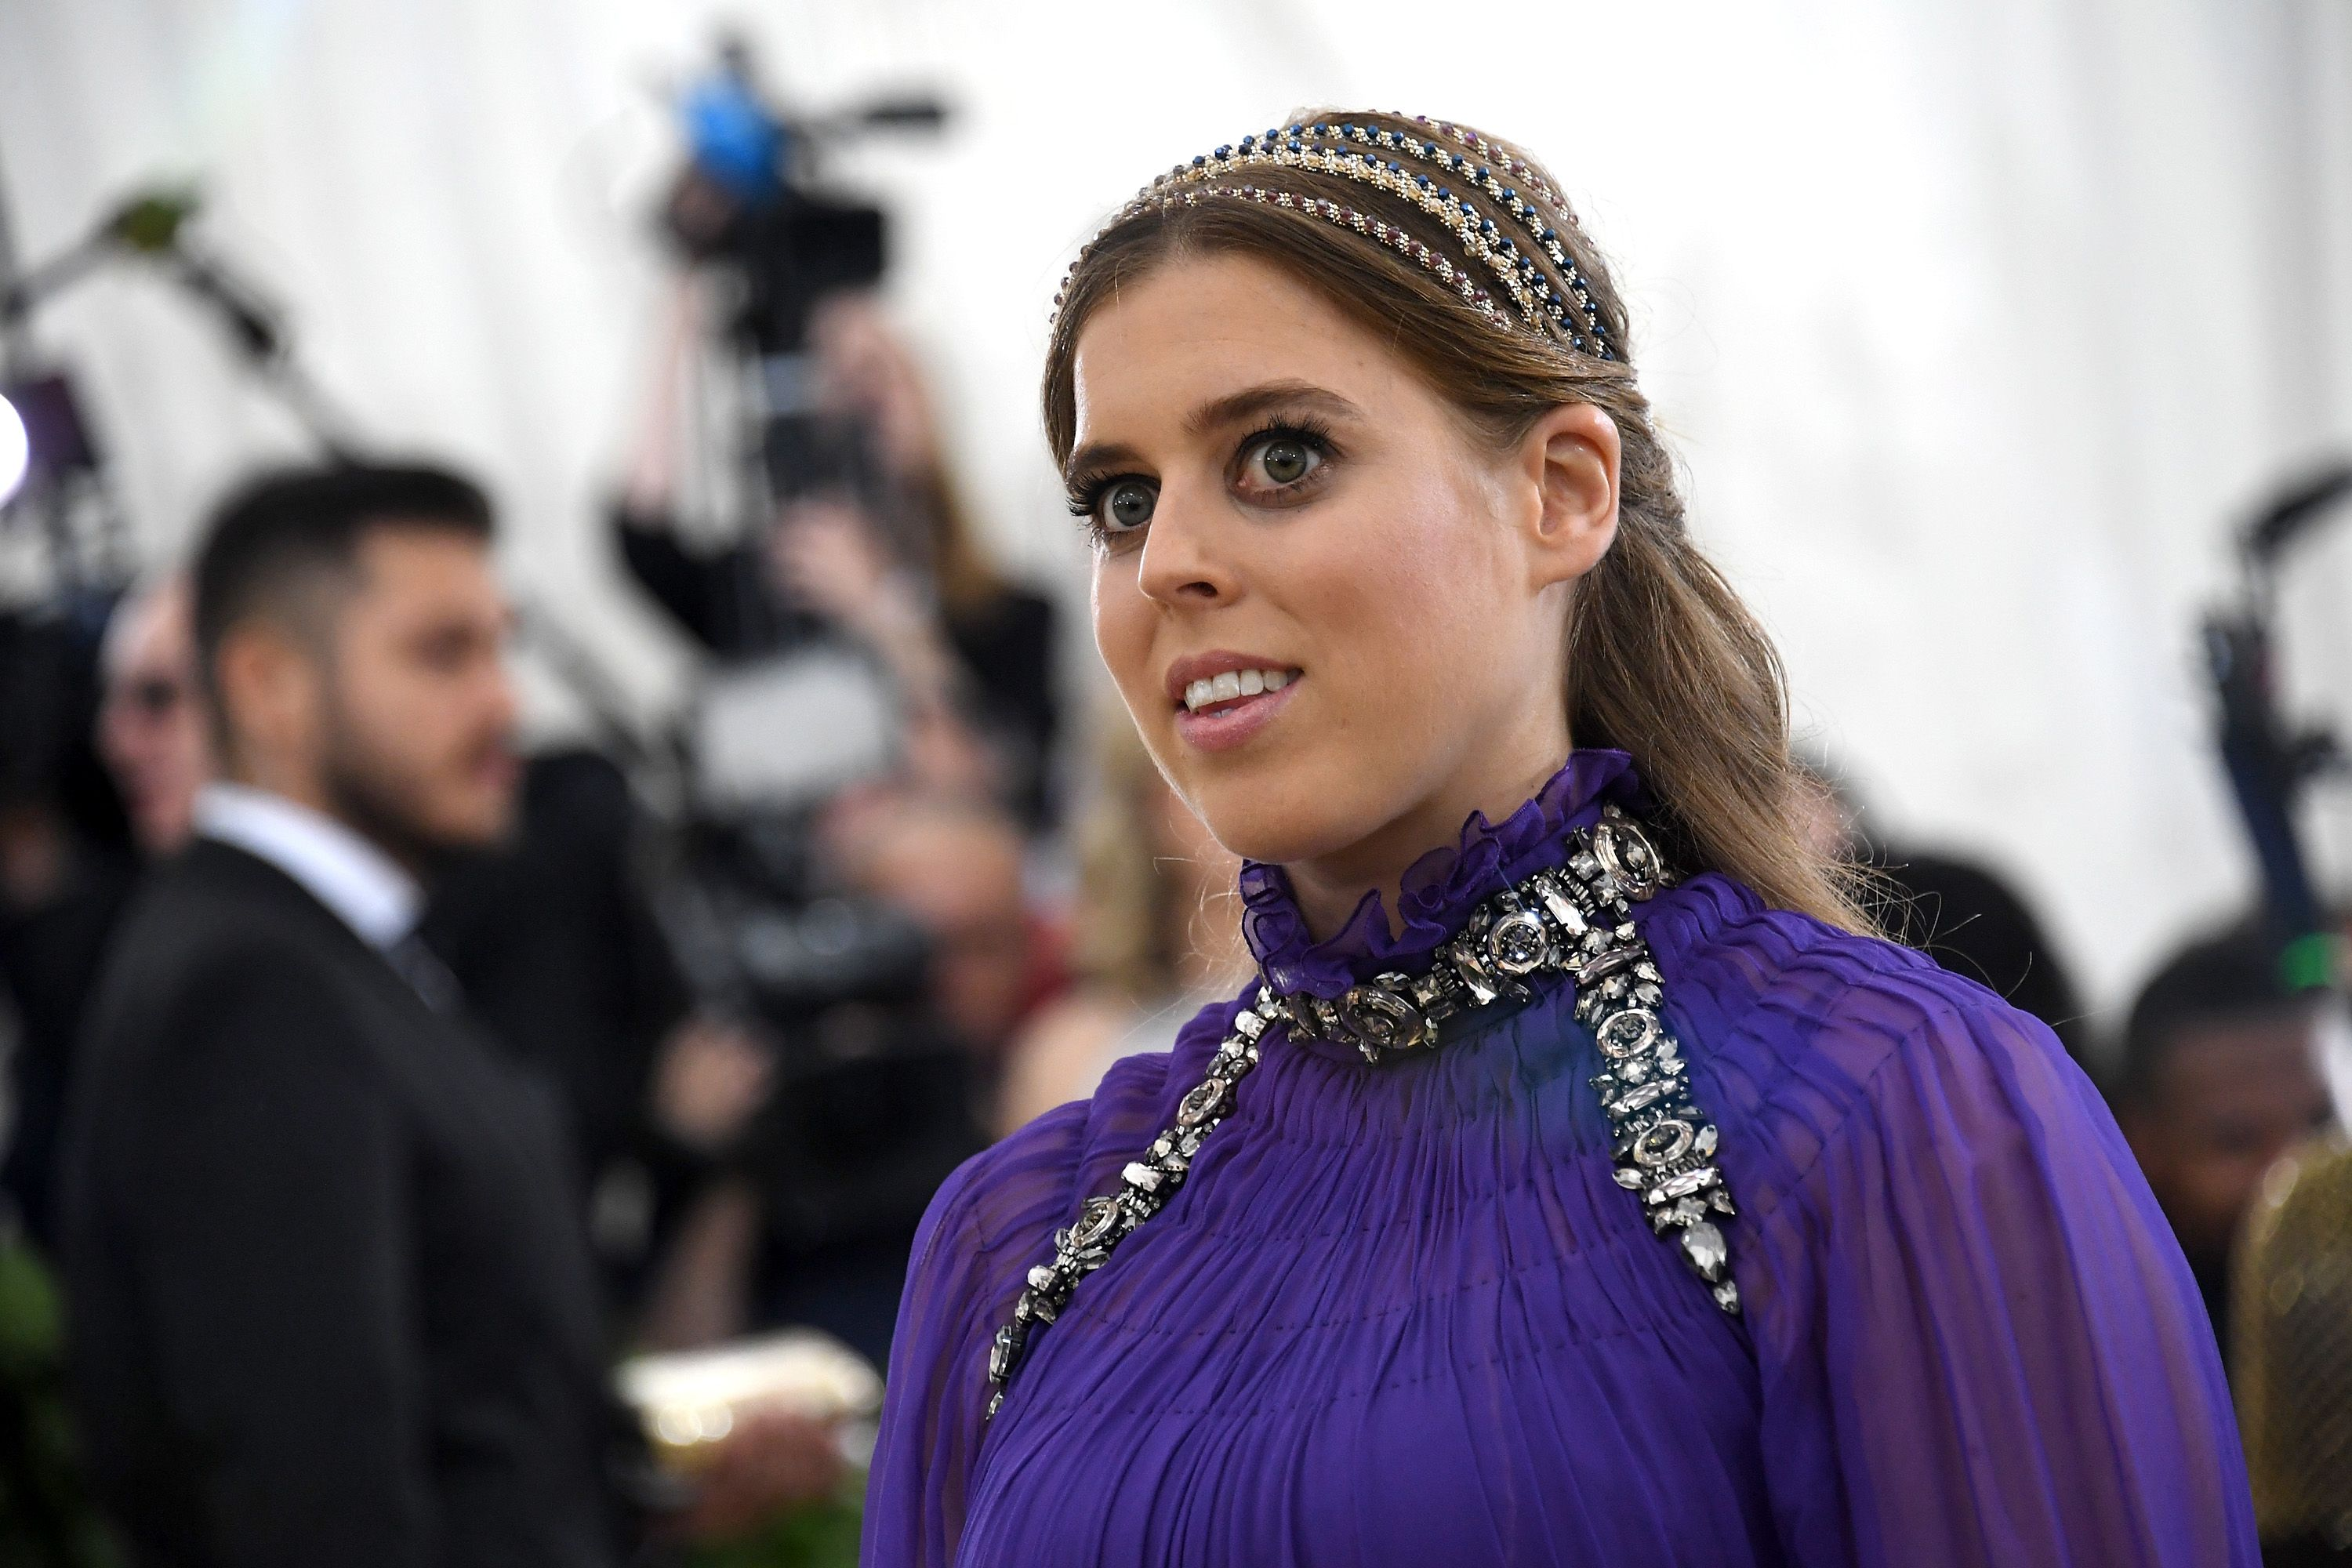 Will Princess Beatrice's title change after her wedding?